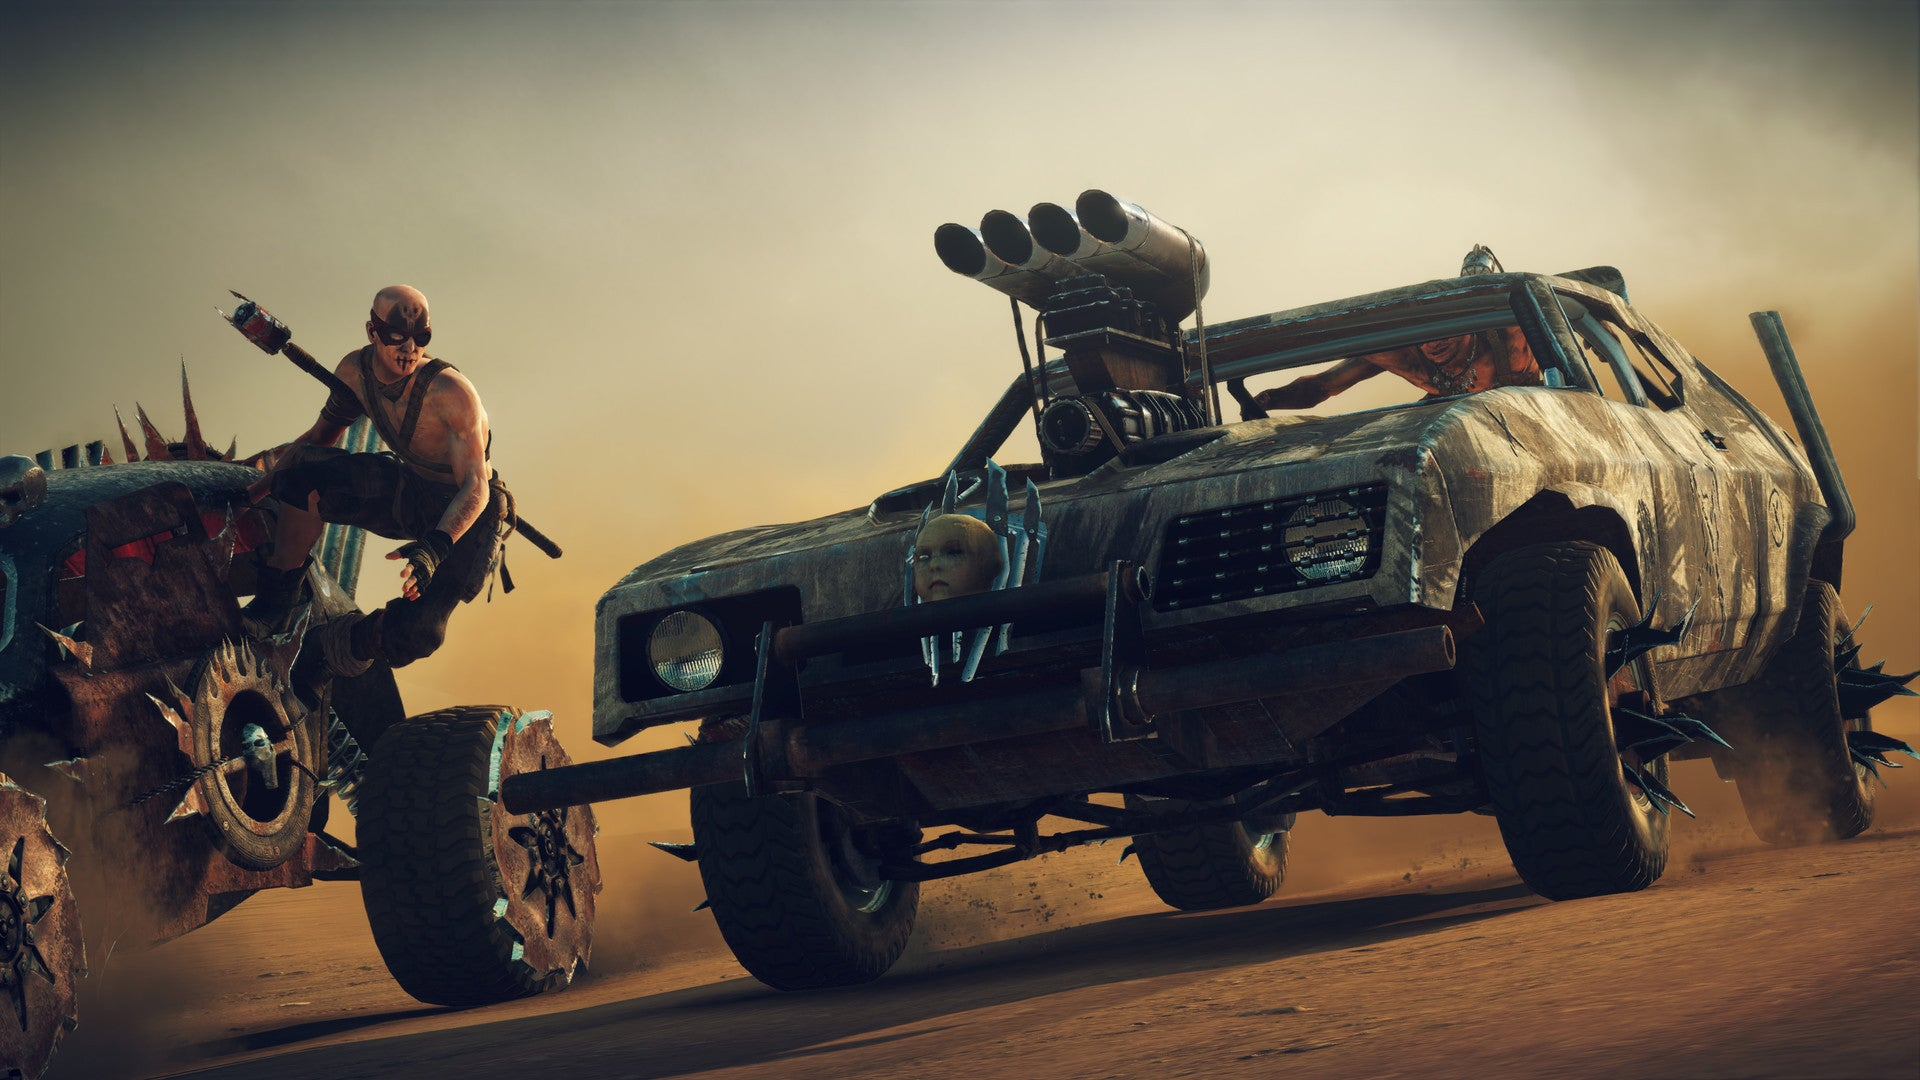 new release pc car gamesThe best Linux games 35 killer PC games for Linux and Steam Machines